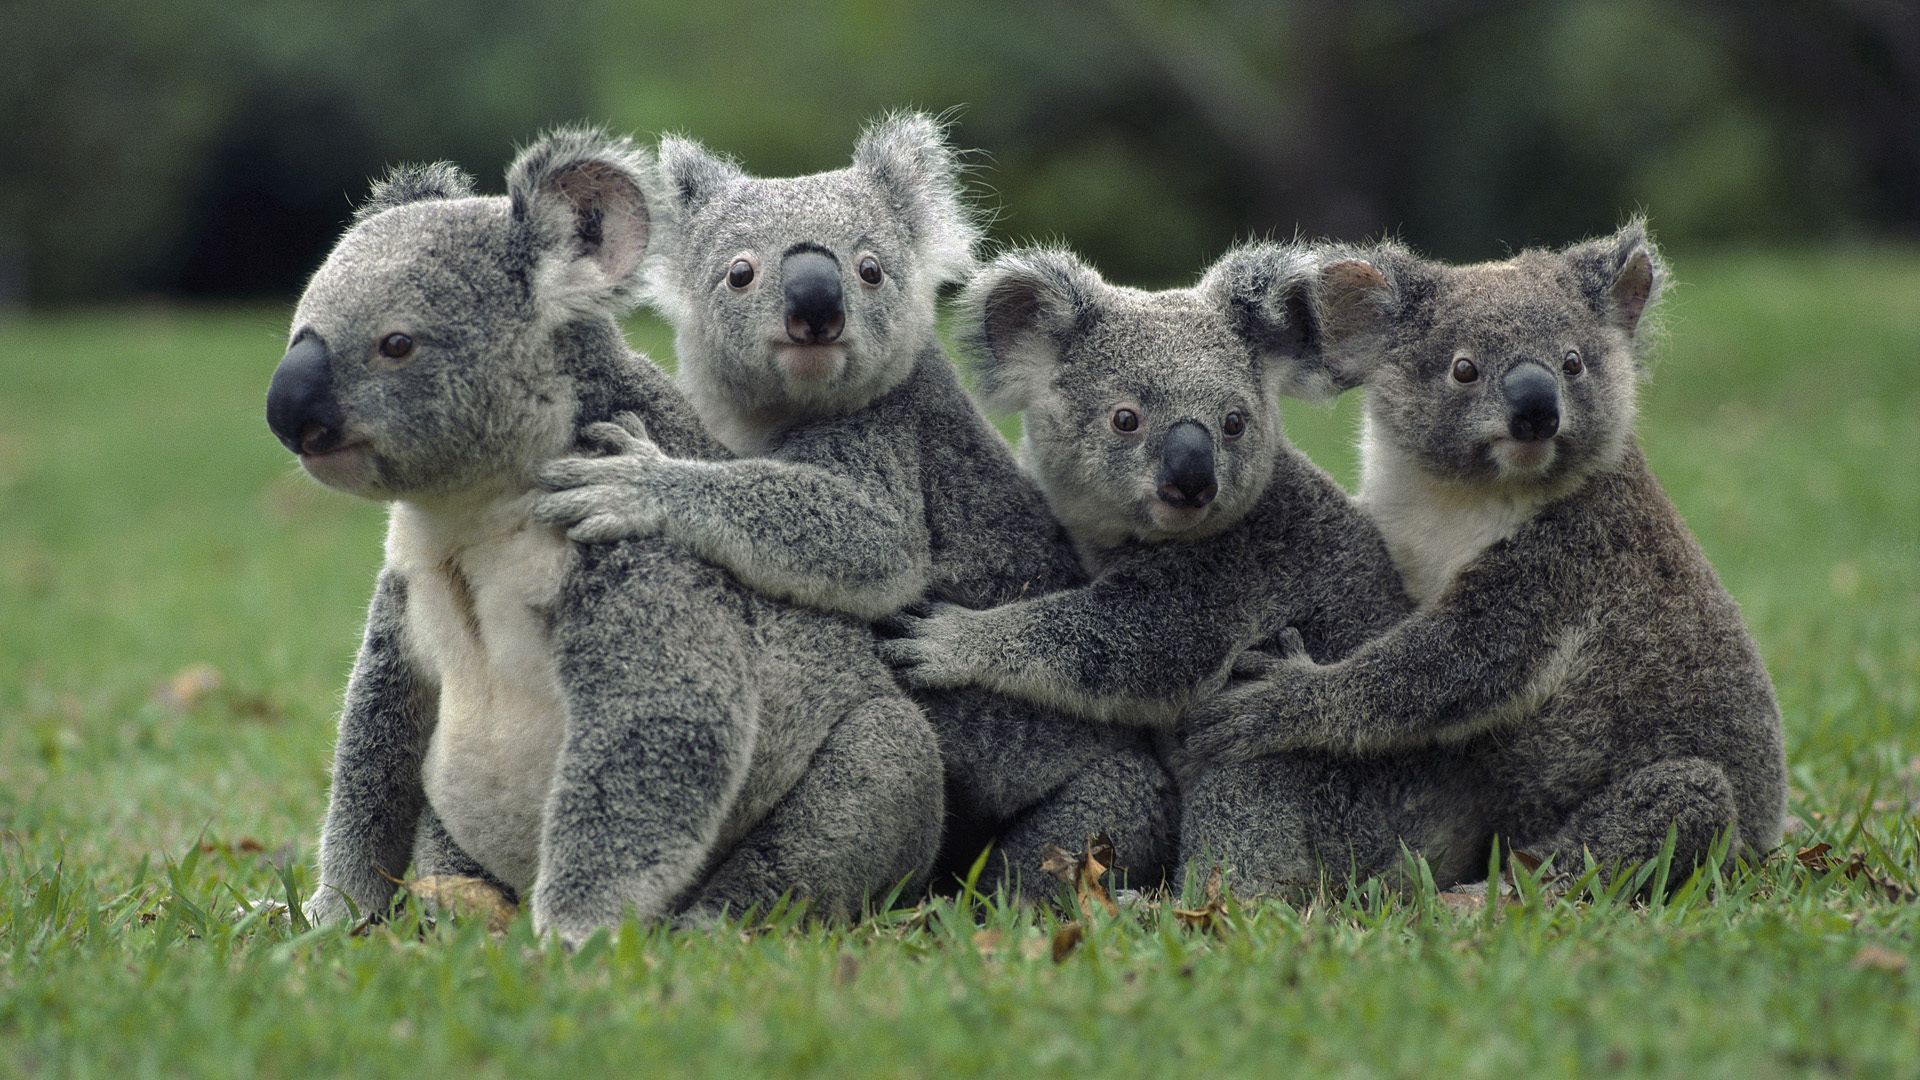 118757 download wallpaper Animals, Grass, Koalas, Sit, Family screensavers and pictures for free